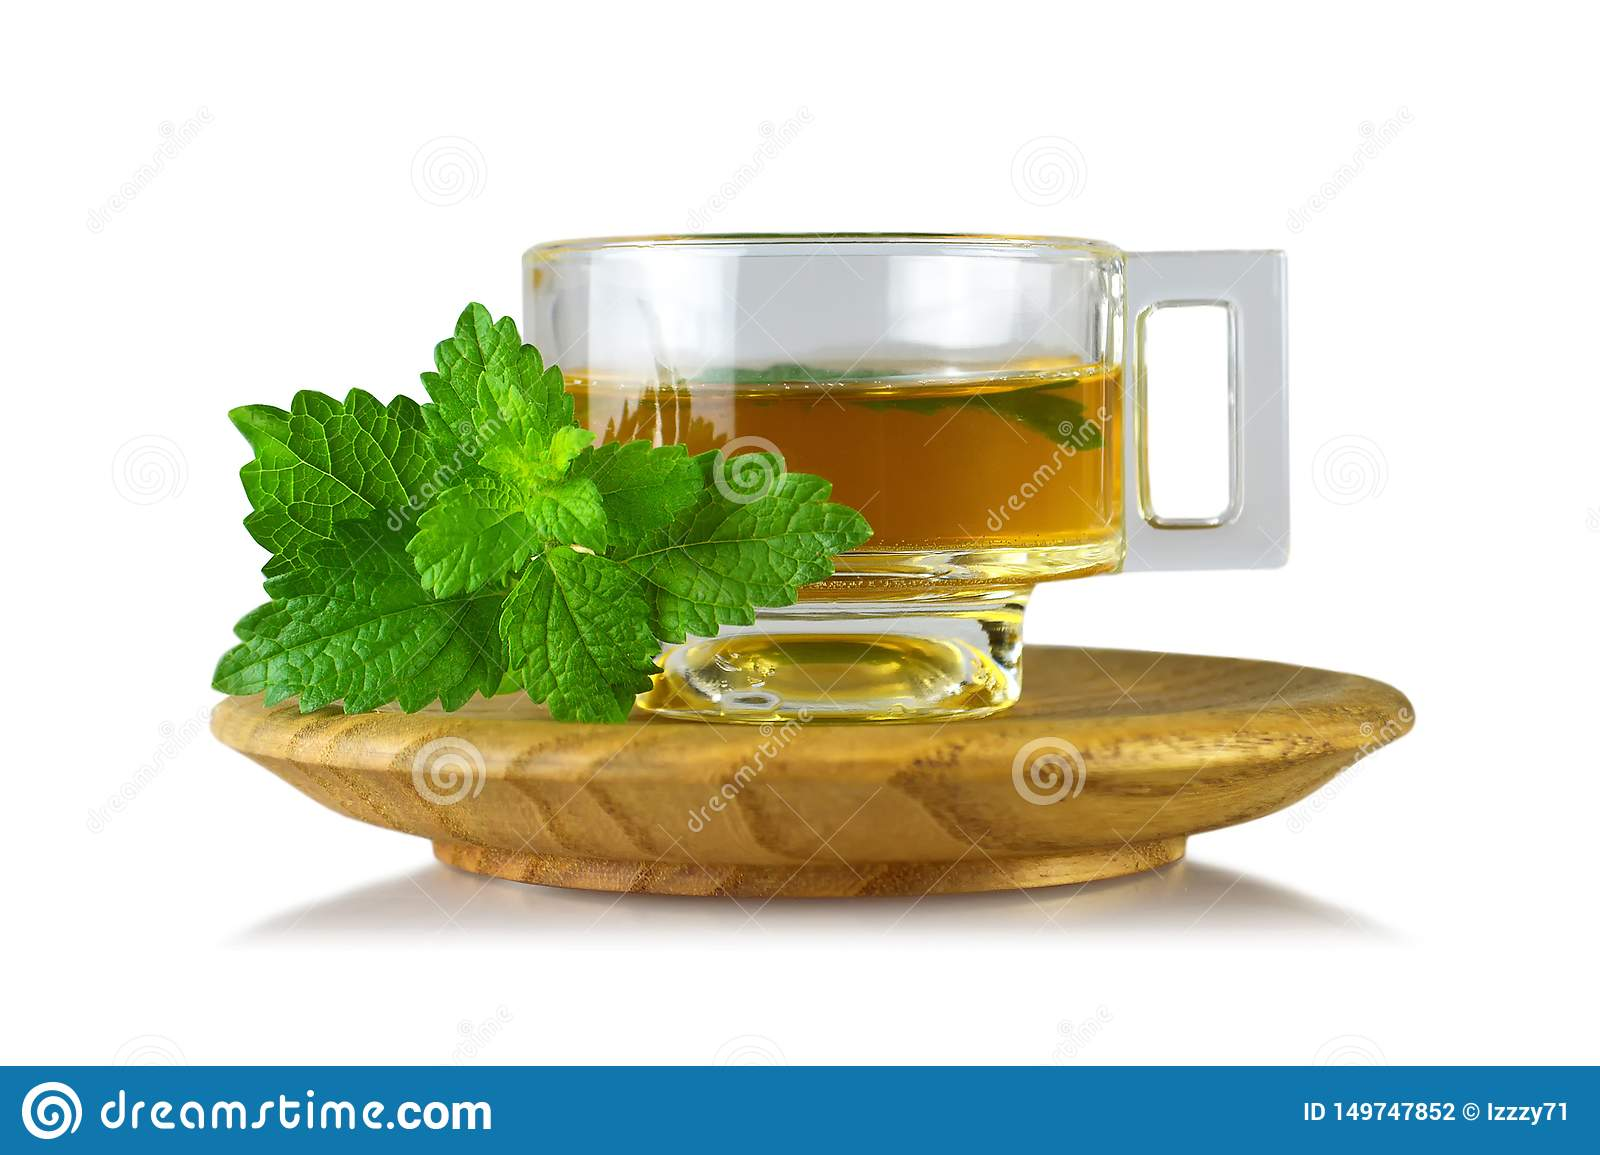 Lemon balm Melissa tea in cup isolated on white background